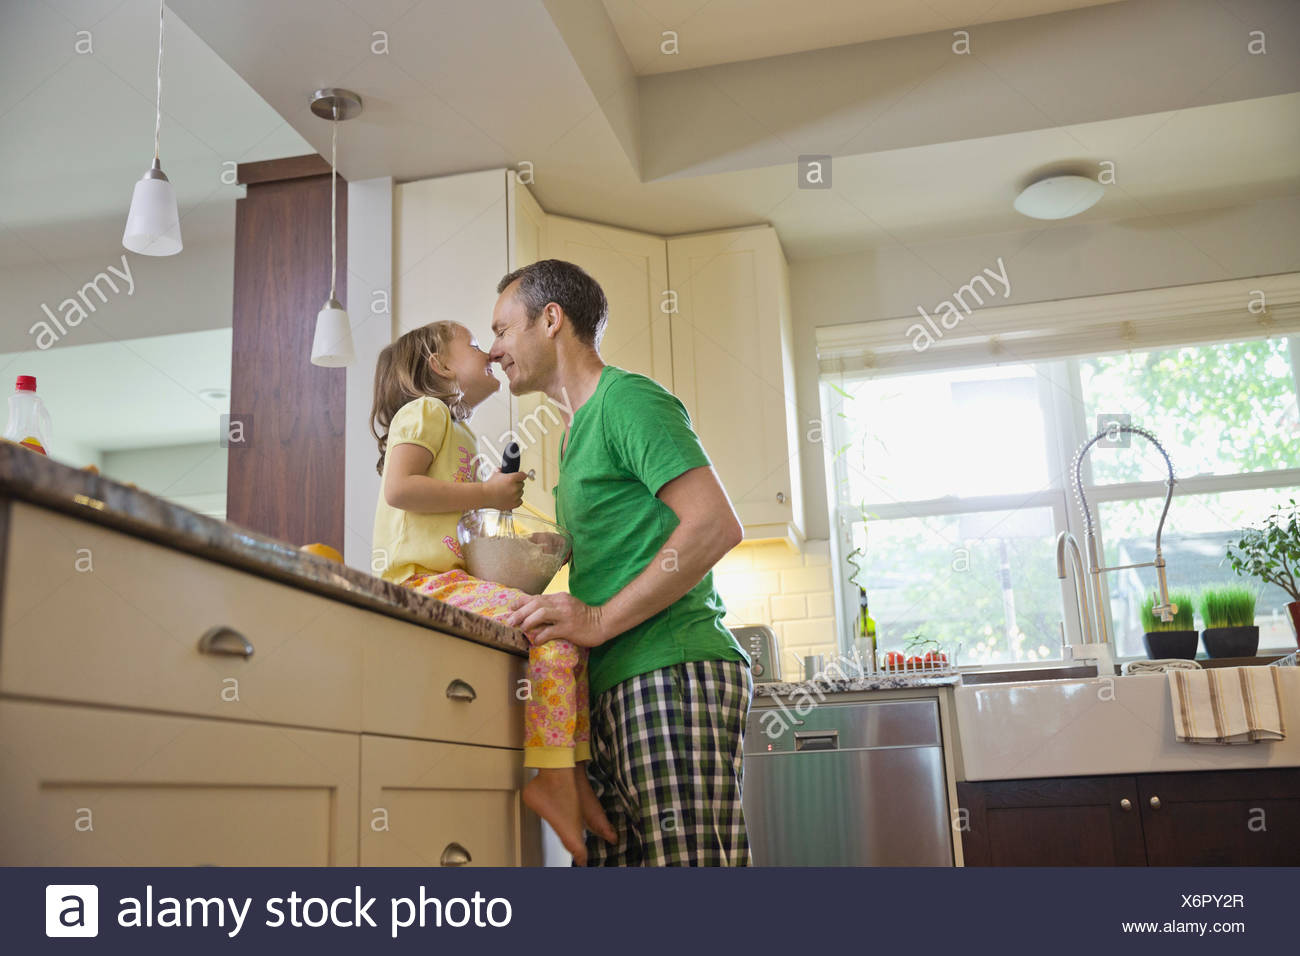 Father and daughter touching noses - Stock Image